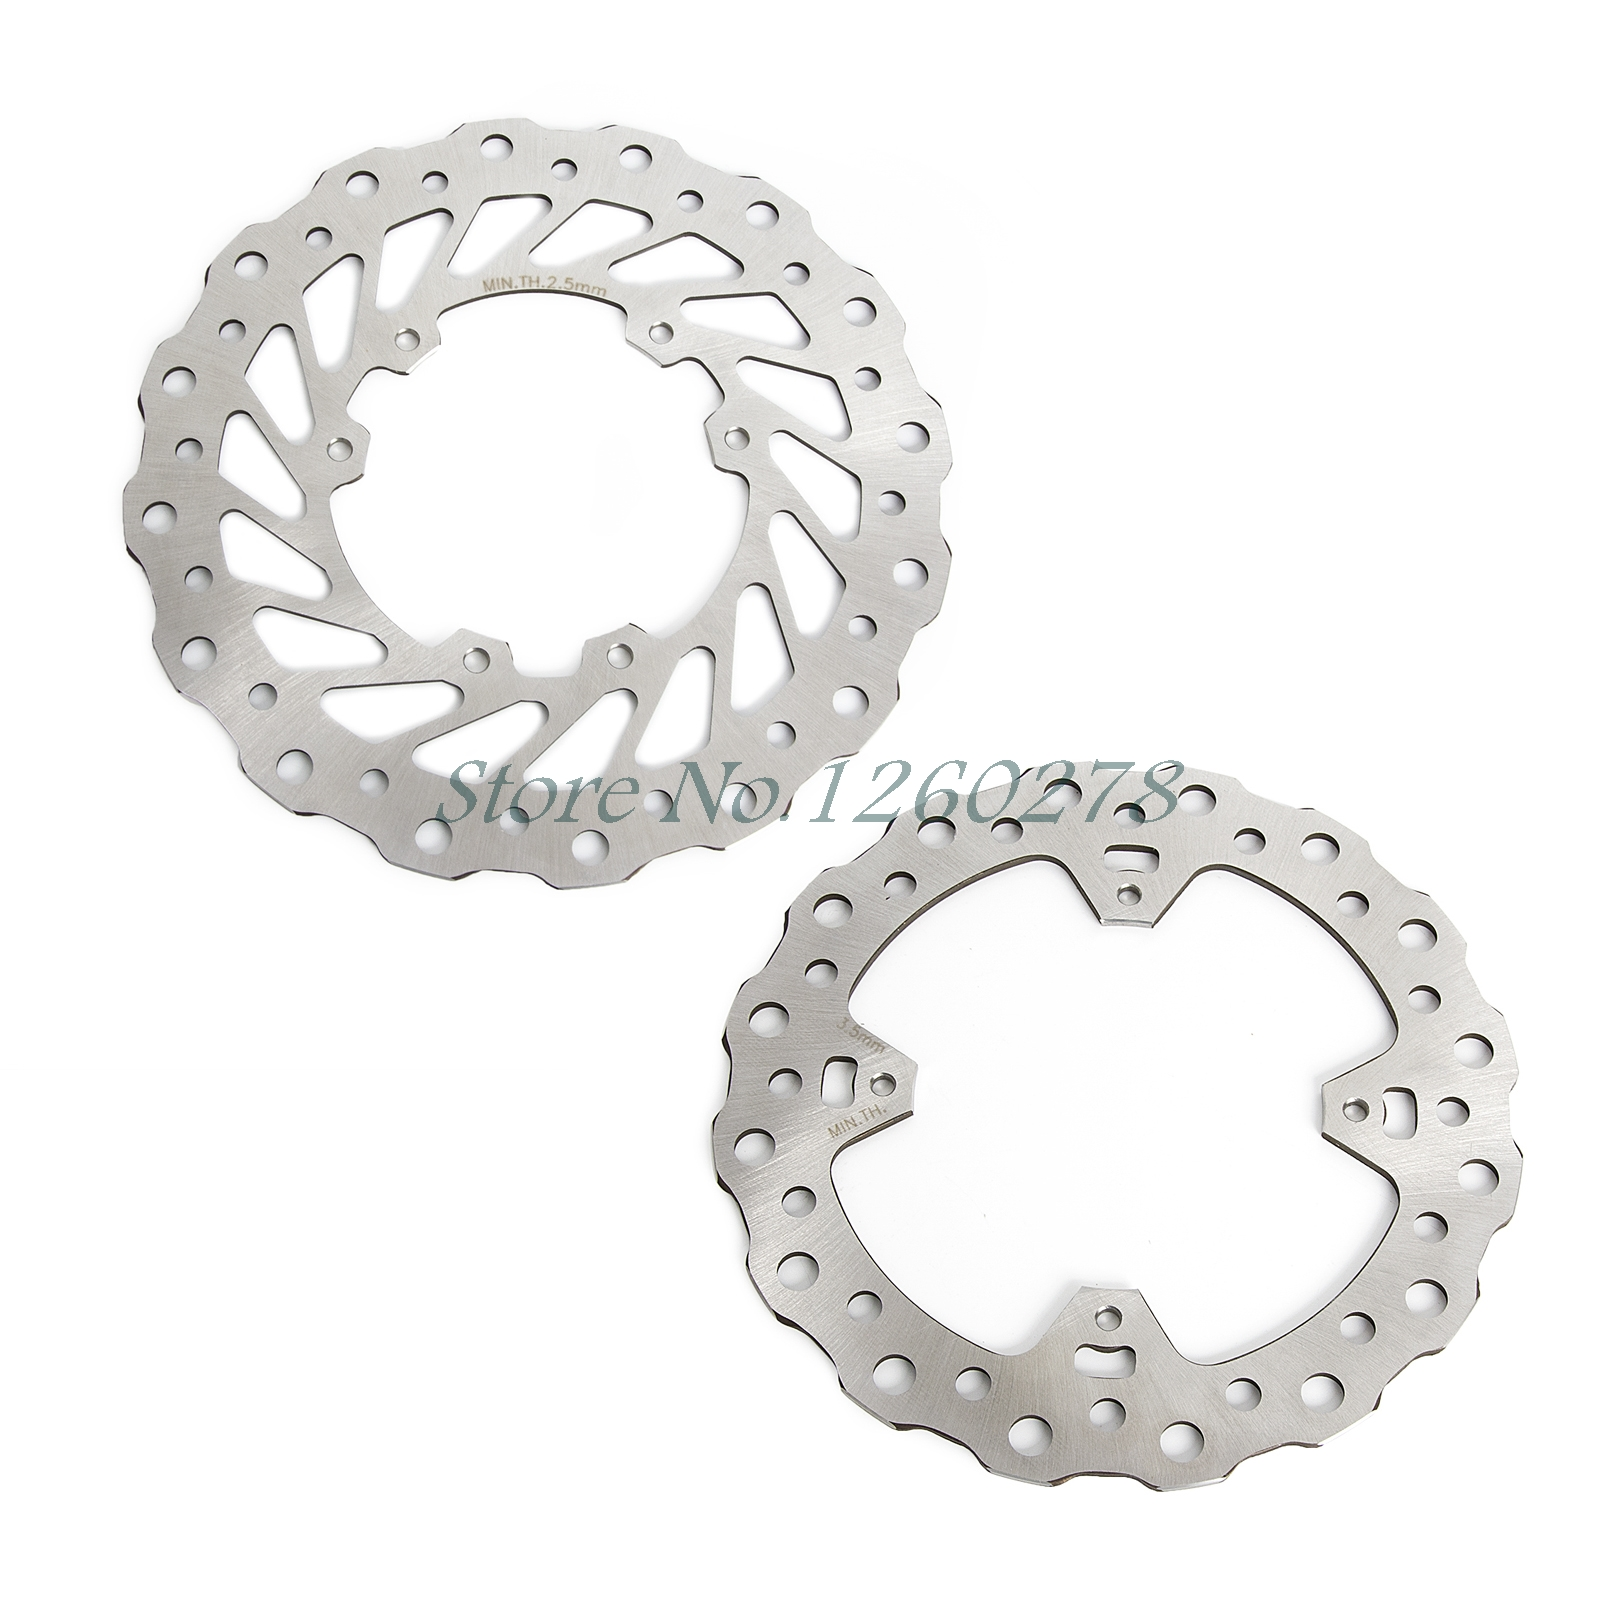 New Motorcycle Front & Rear Wave Disc Brake Rotor For CR125 CR250 02-07 CRF250R CRF250X CRF450R CRF450X mfs motor motorcycle part front rear brake discs rotor for yamaha yzf r6 2003 2004 2005 yzfr6 03 04 05 gold